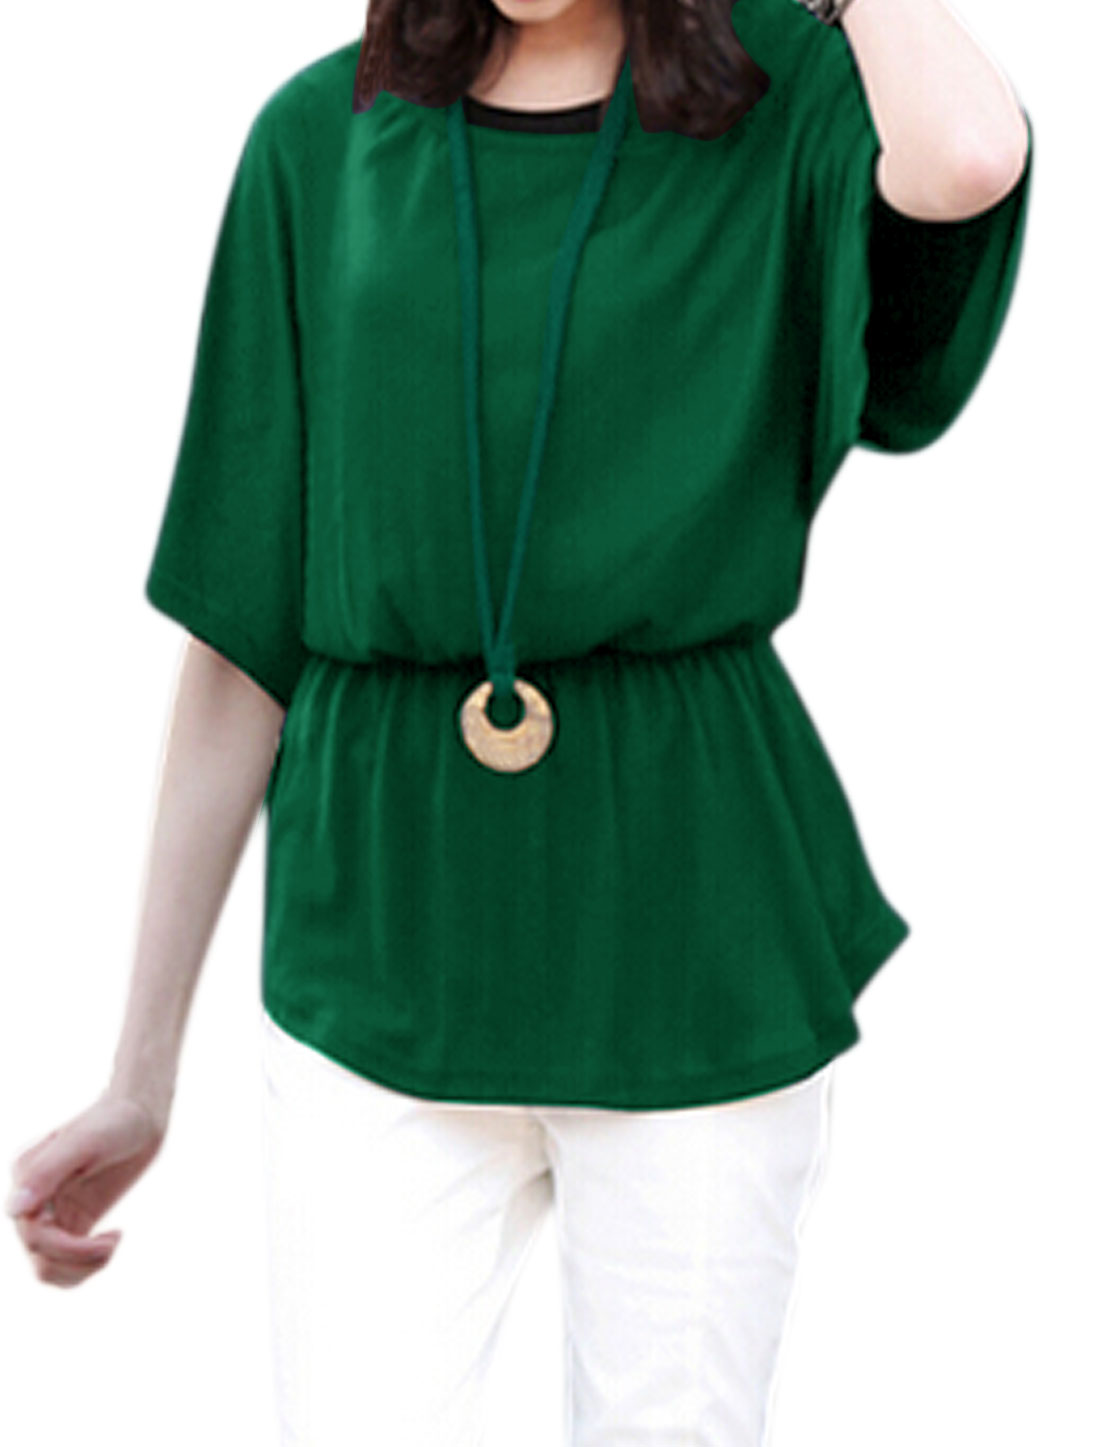 Women Elastic Waist Batwing Blouse w Sweater Cord Necklace Green XS